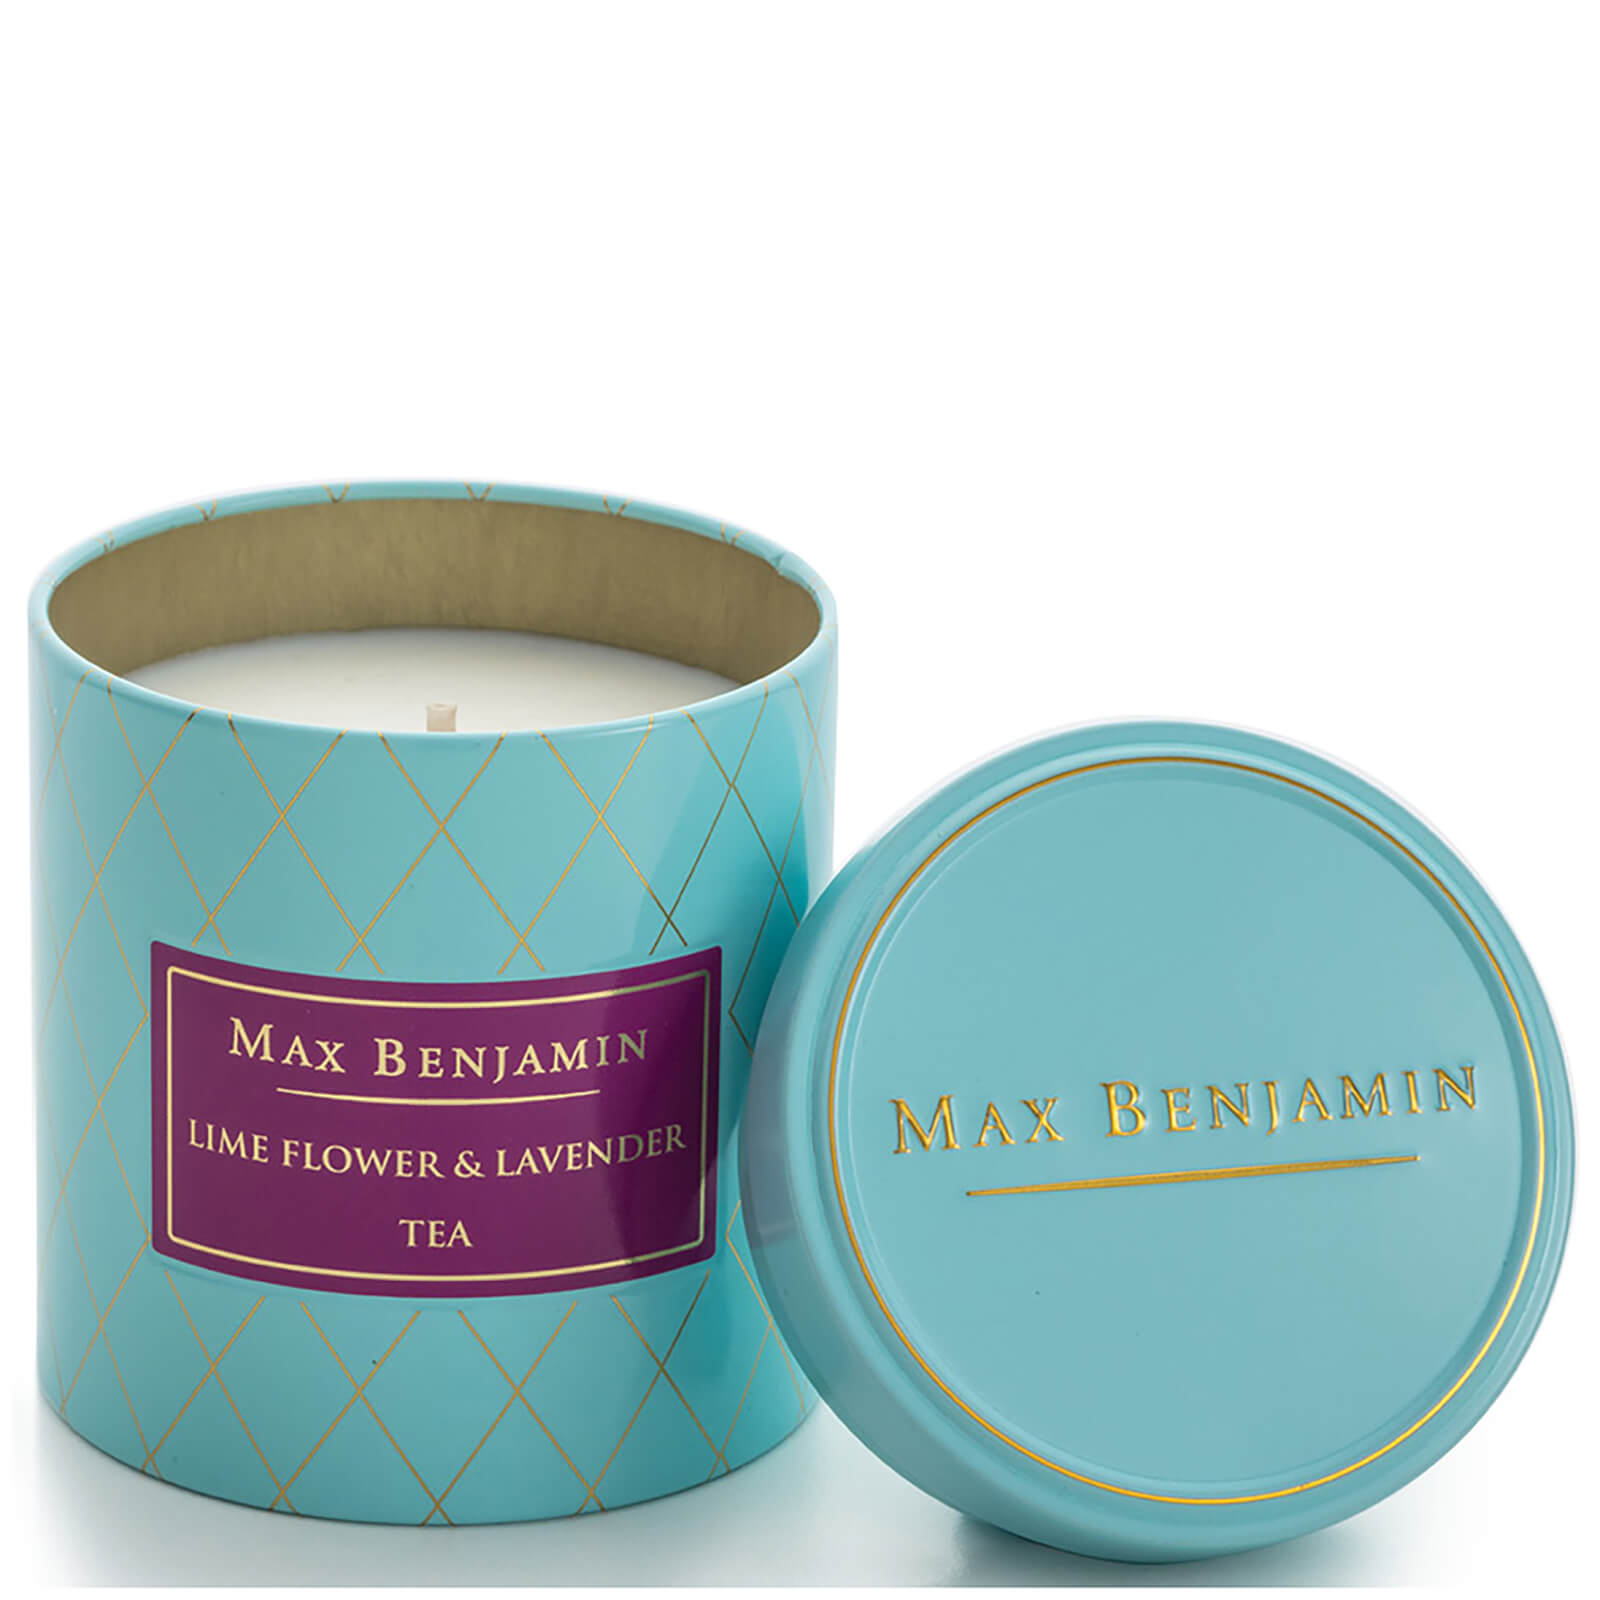 Max Benjamin Scented Candle - Lime Flower and Lavender